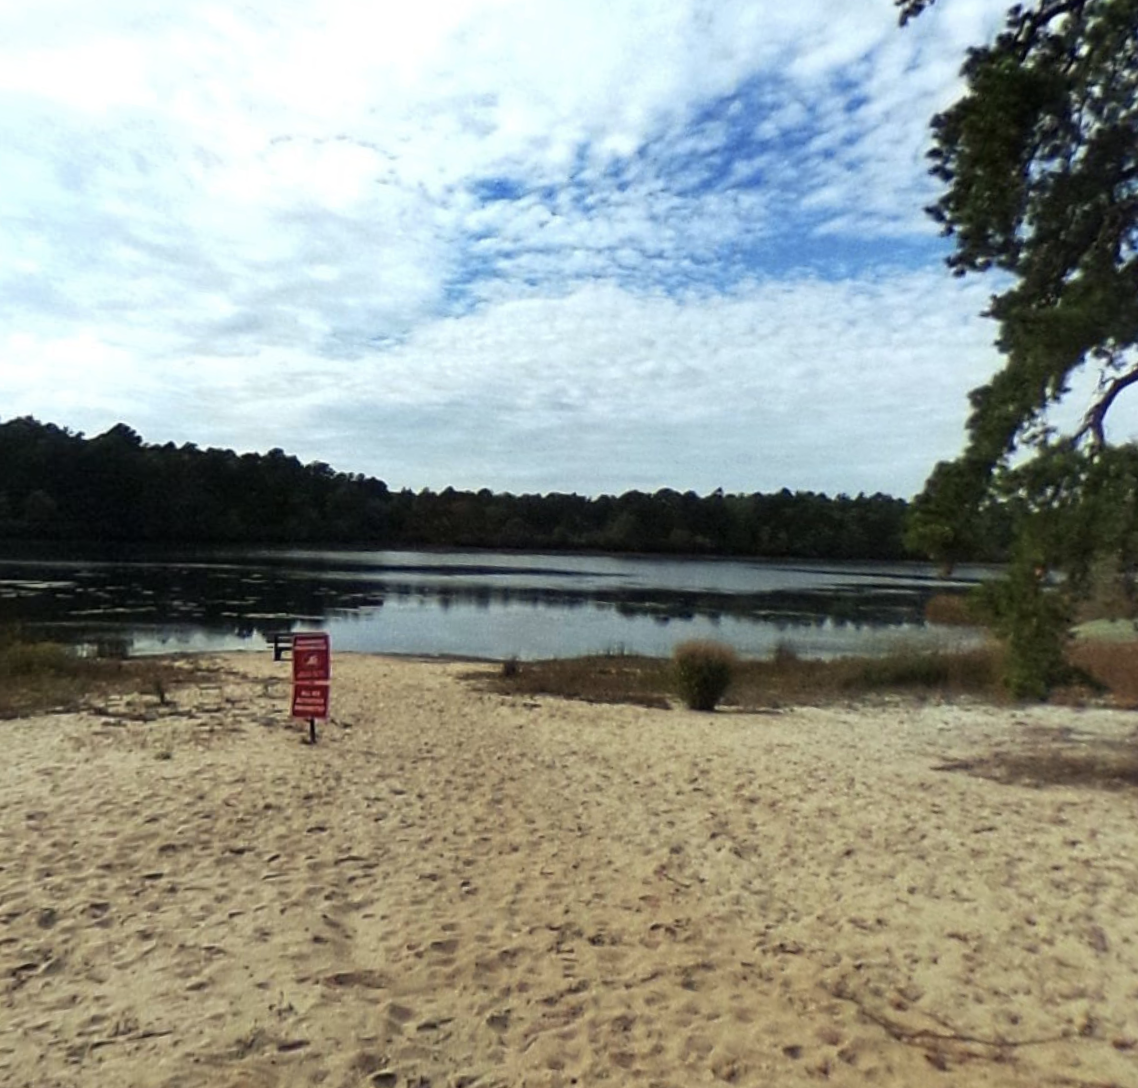 Sears Bellows County Park   Recreational site with a freshwater pond for fishing, camping & hunting, plus hiking & bridle paths.  Telephone: 631-852-8290  63 Bellows Pond Road Hampton Bays, NY 11946